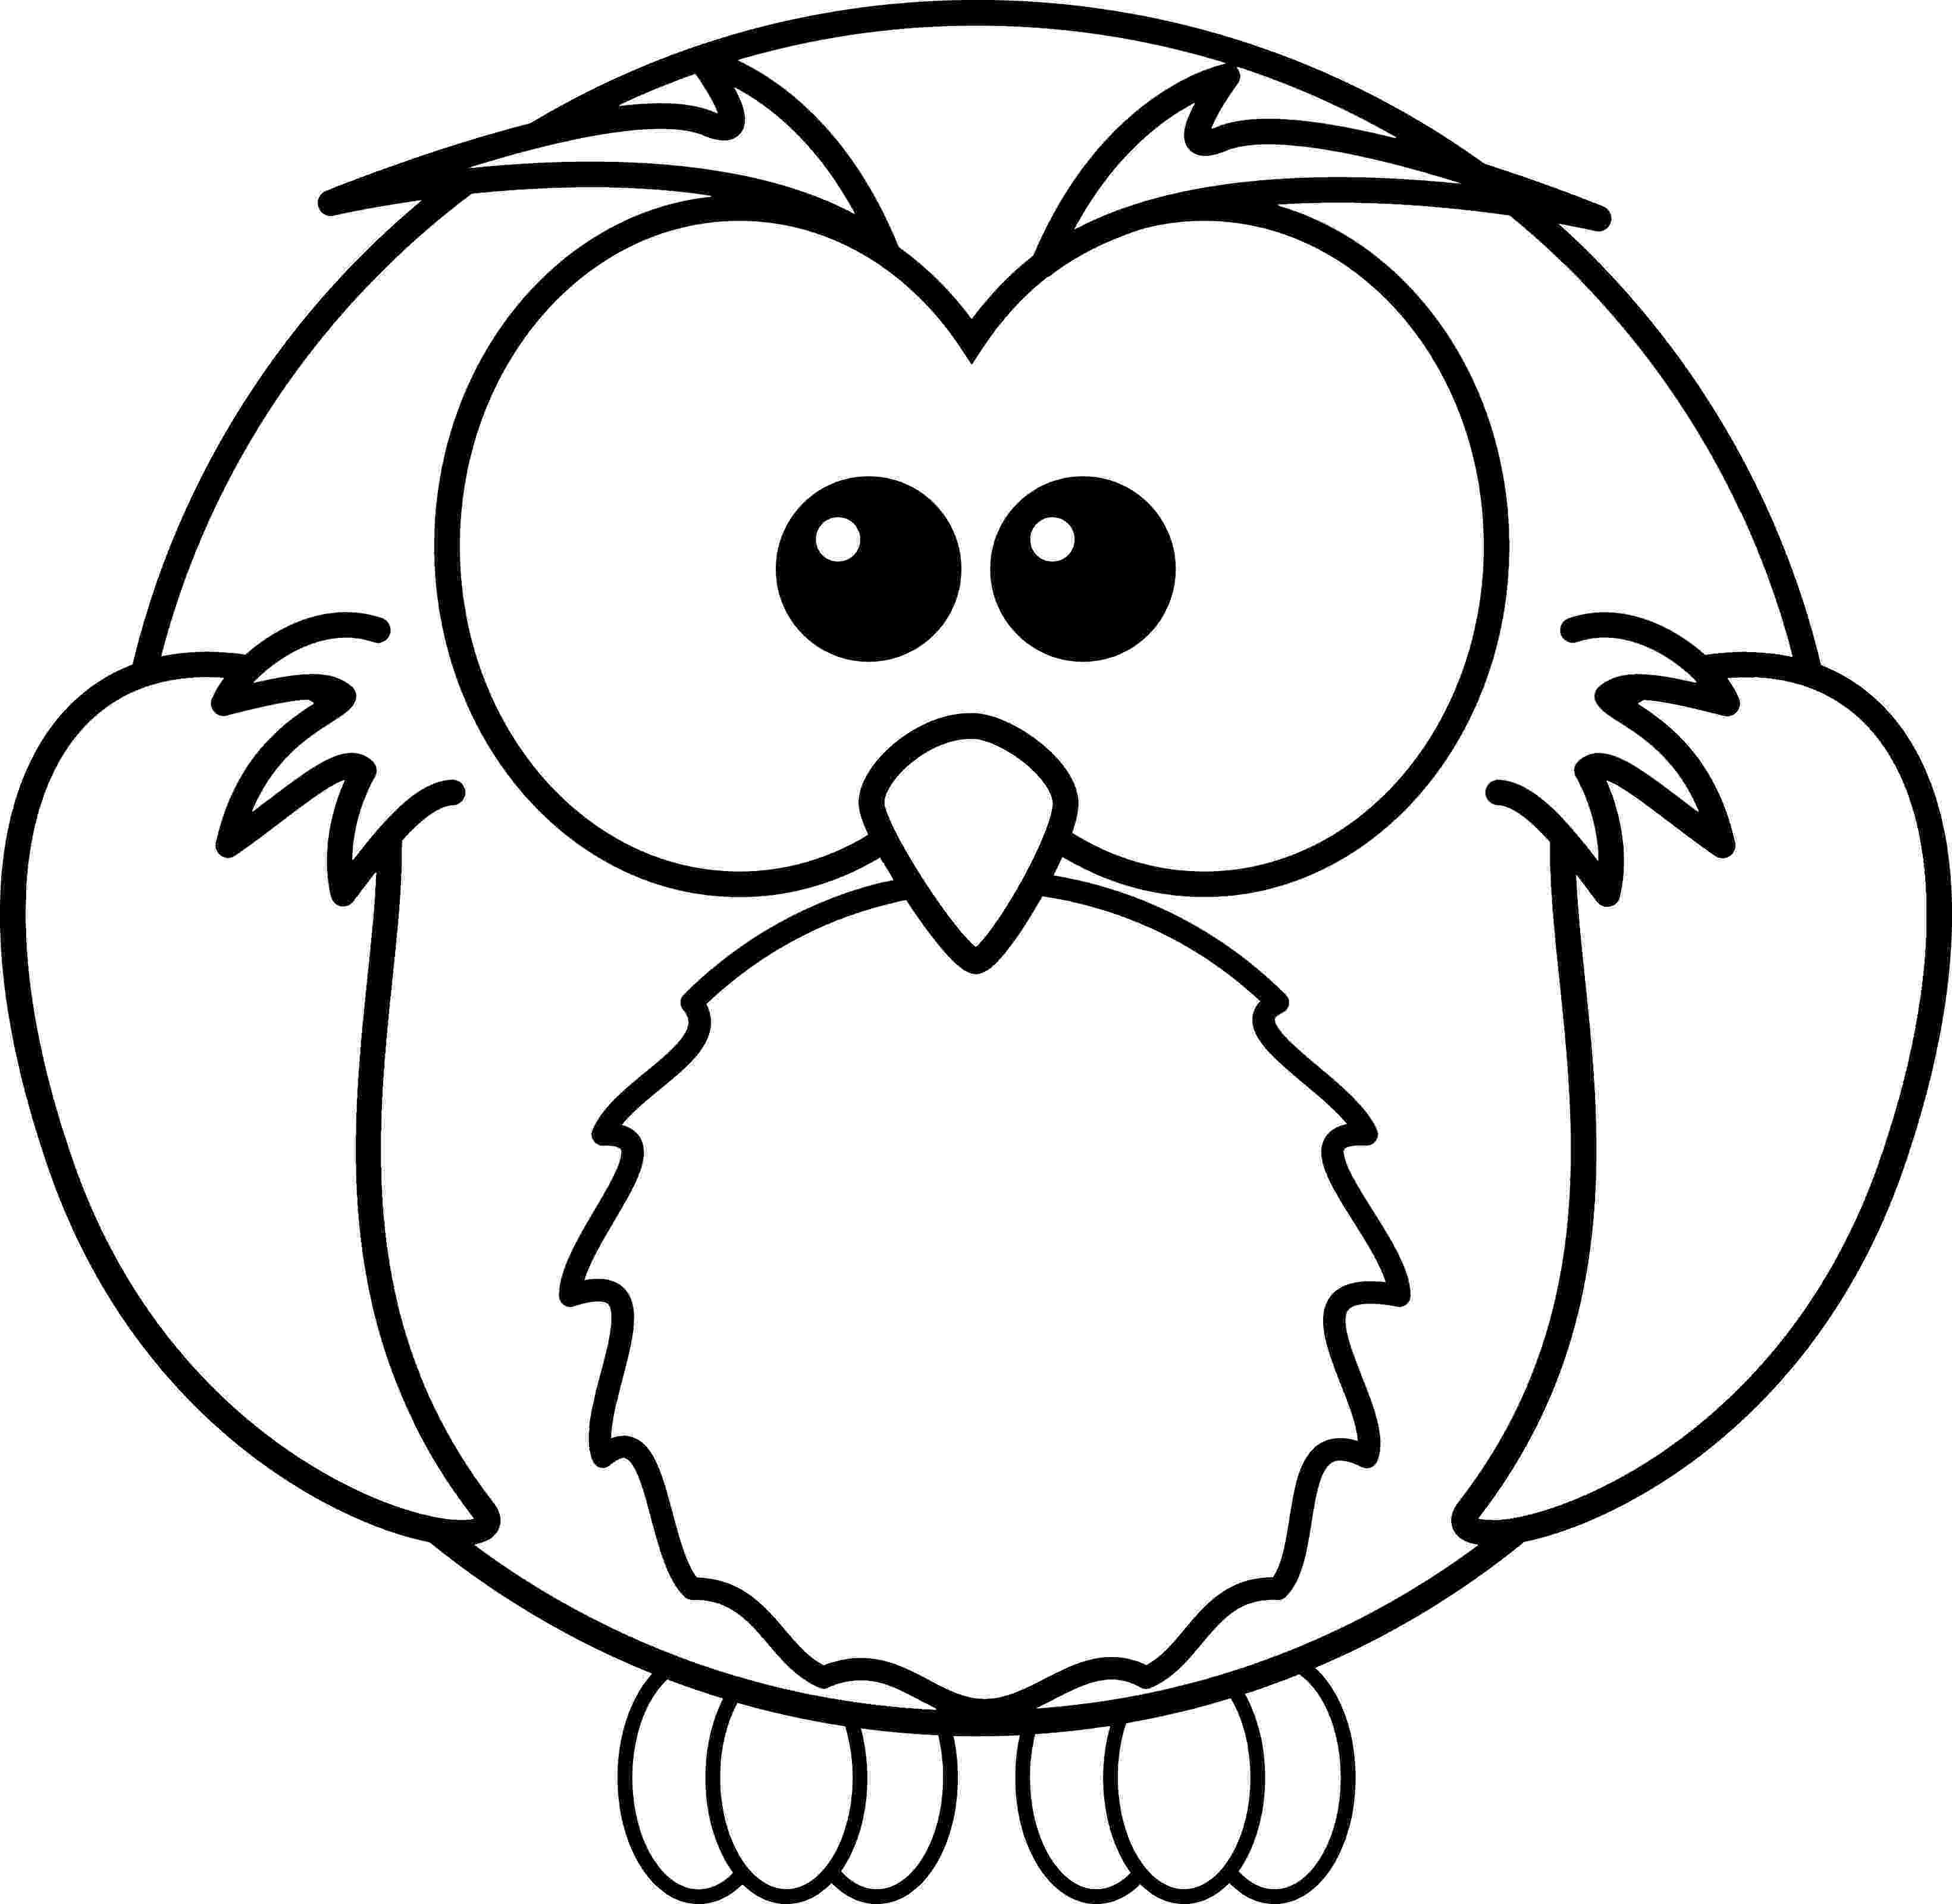 cute owl printable coloring pages cute owl coloring page free printable coloring pages cute coloring printable owl pages